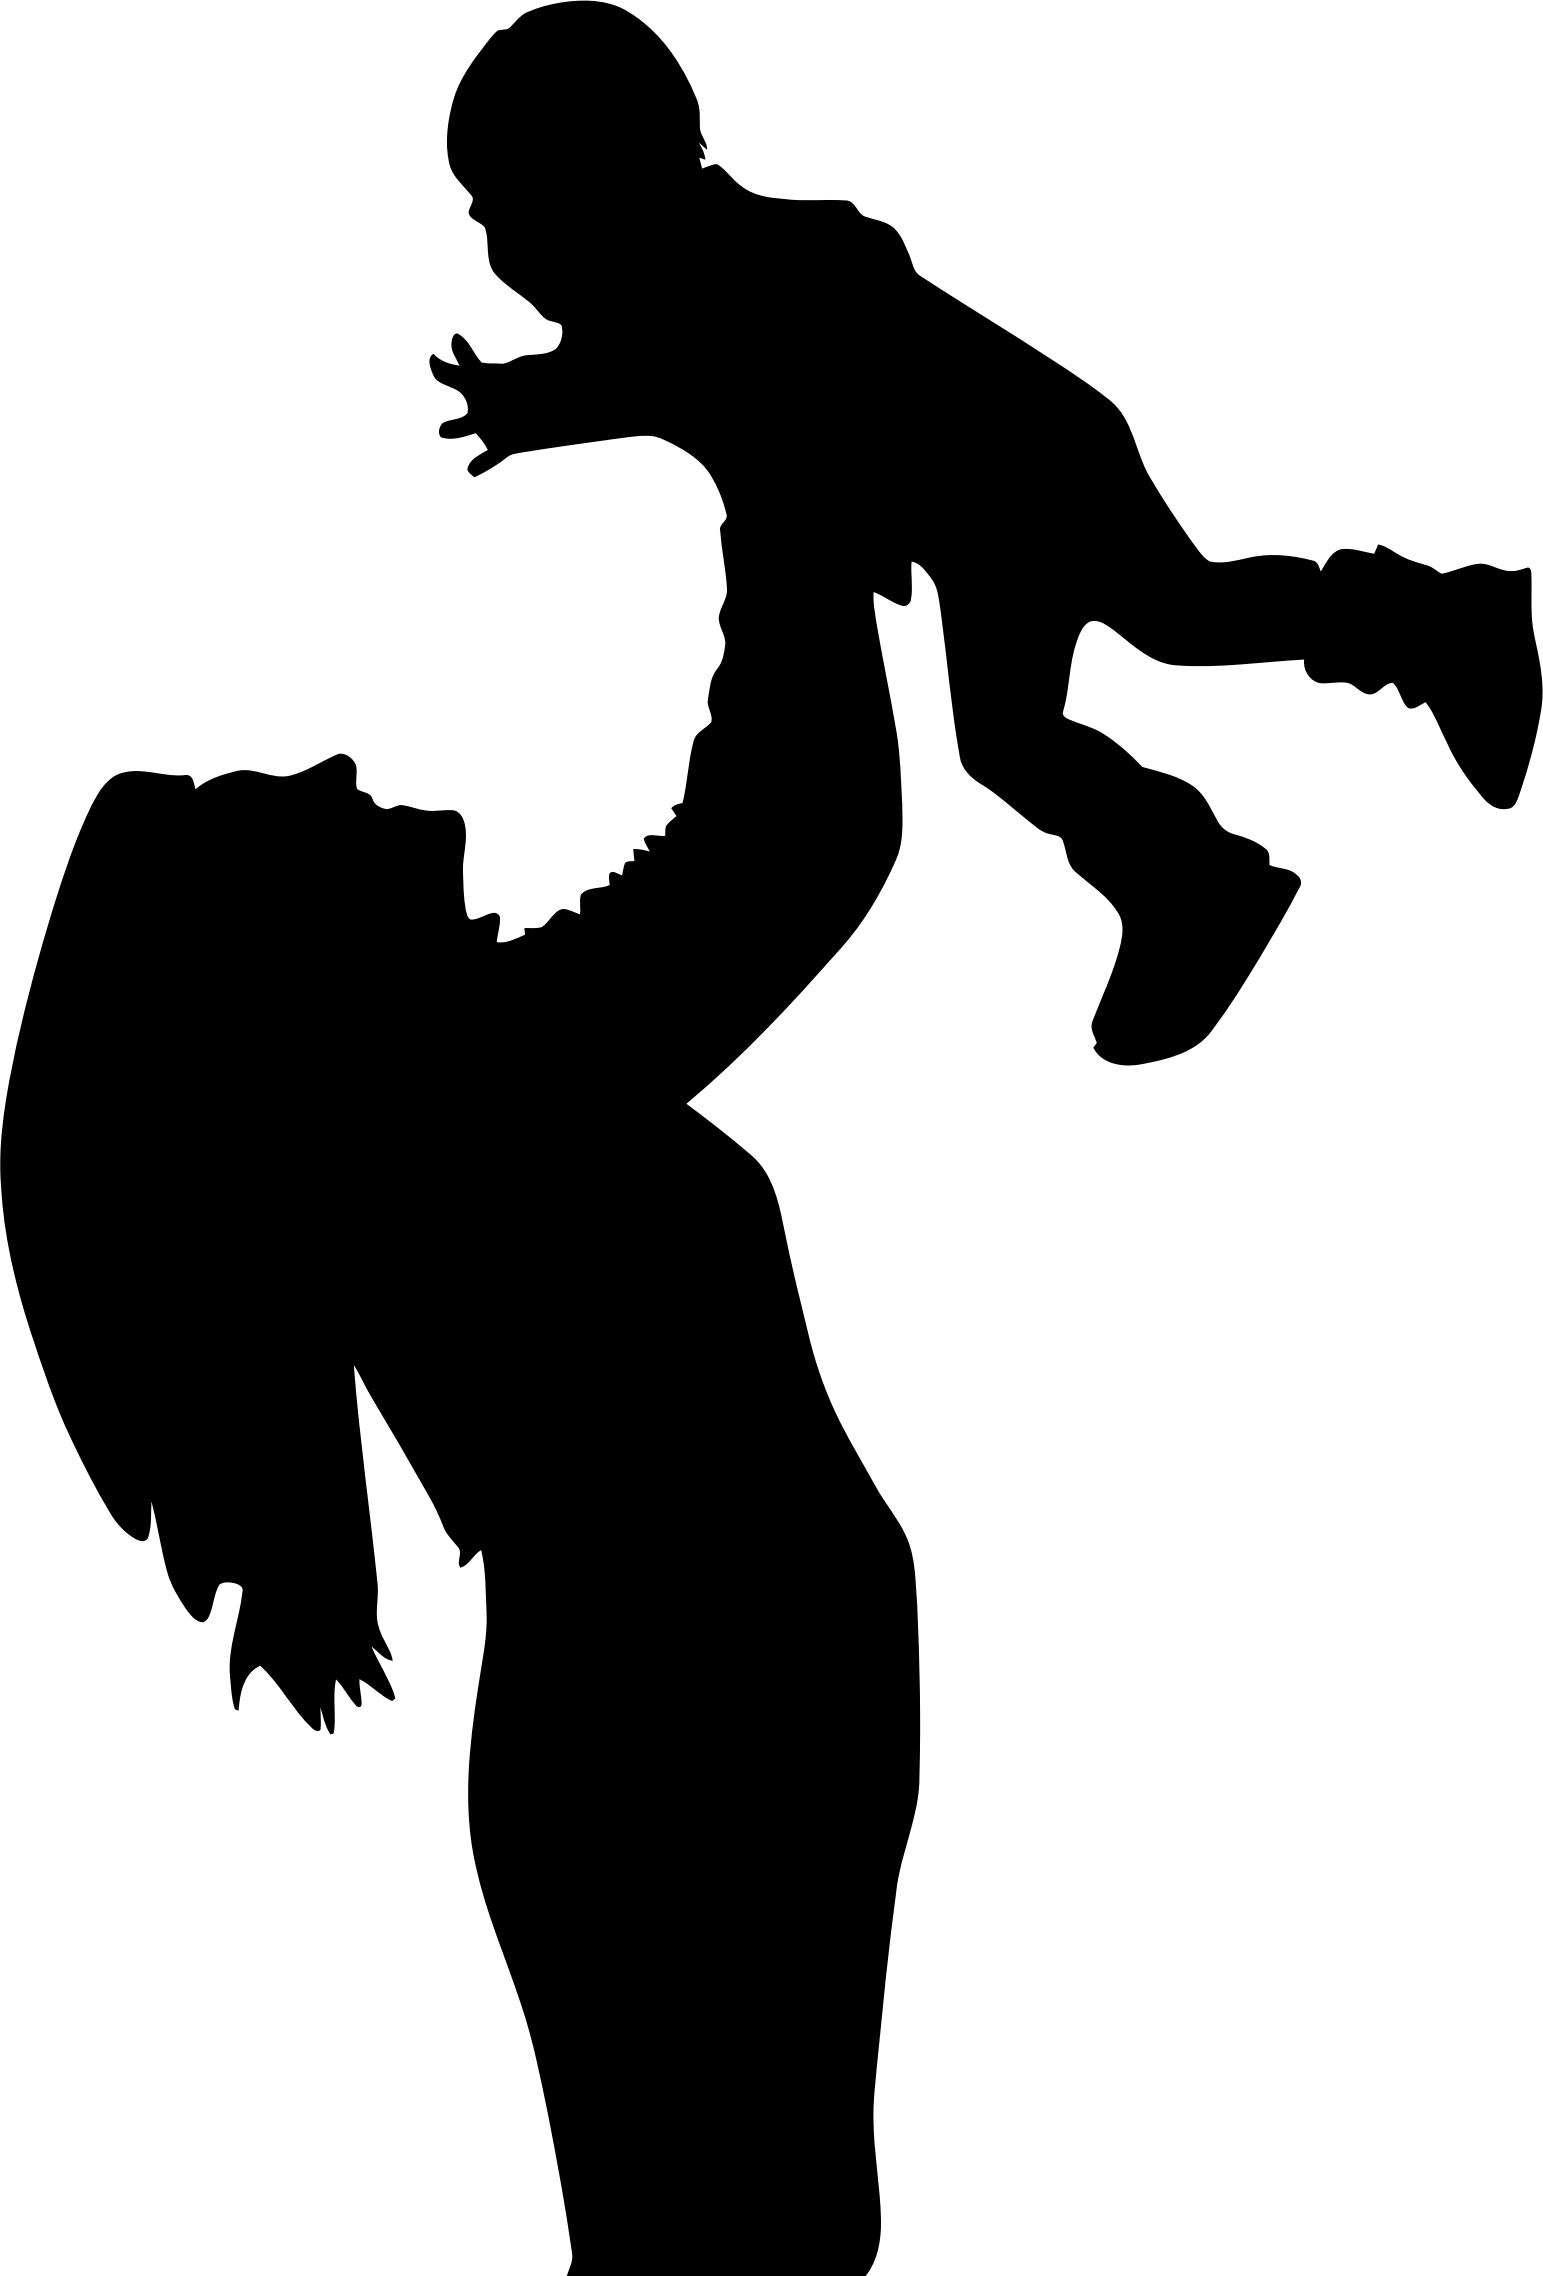 1543x2276 Mother And Son Silhouette 2 Icons Png